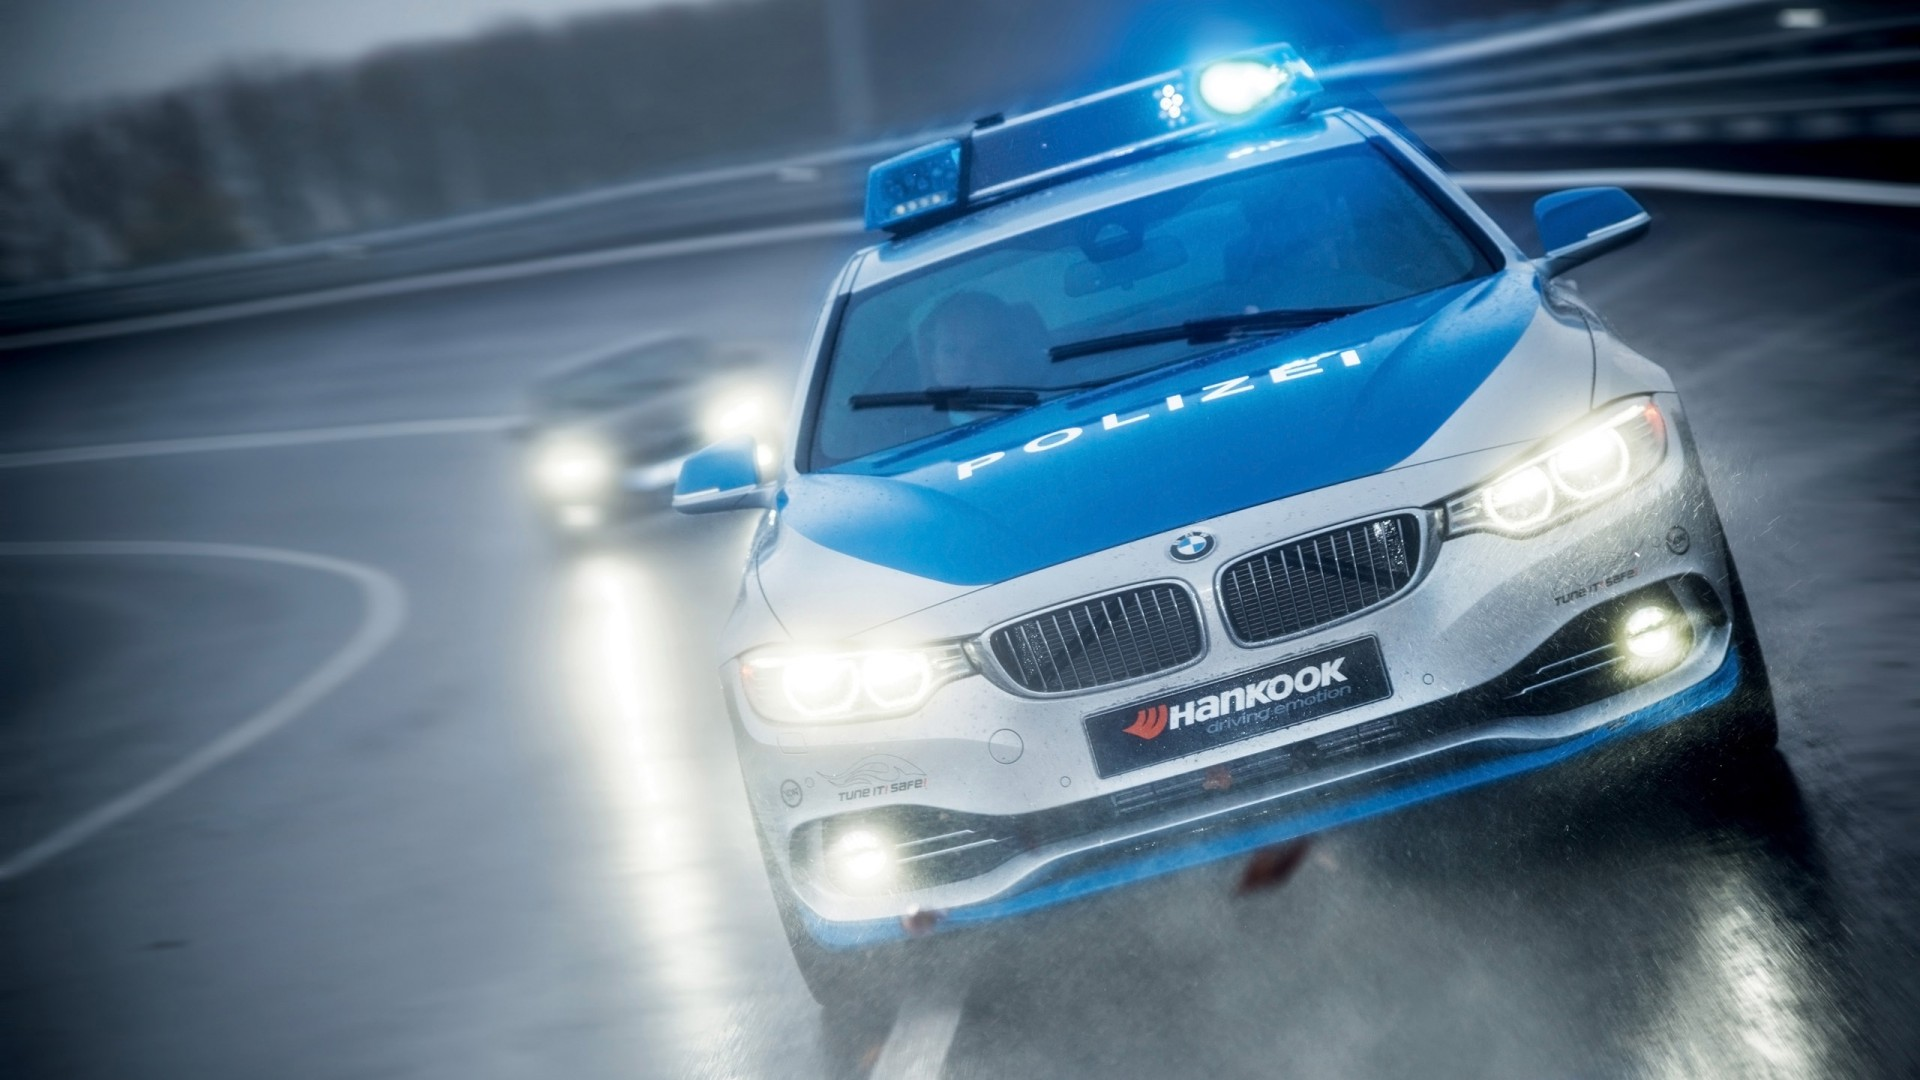 2013 Ac Schnitzer Bmw Acs4 2 8i Police Coupe Wallpaper